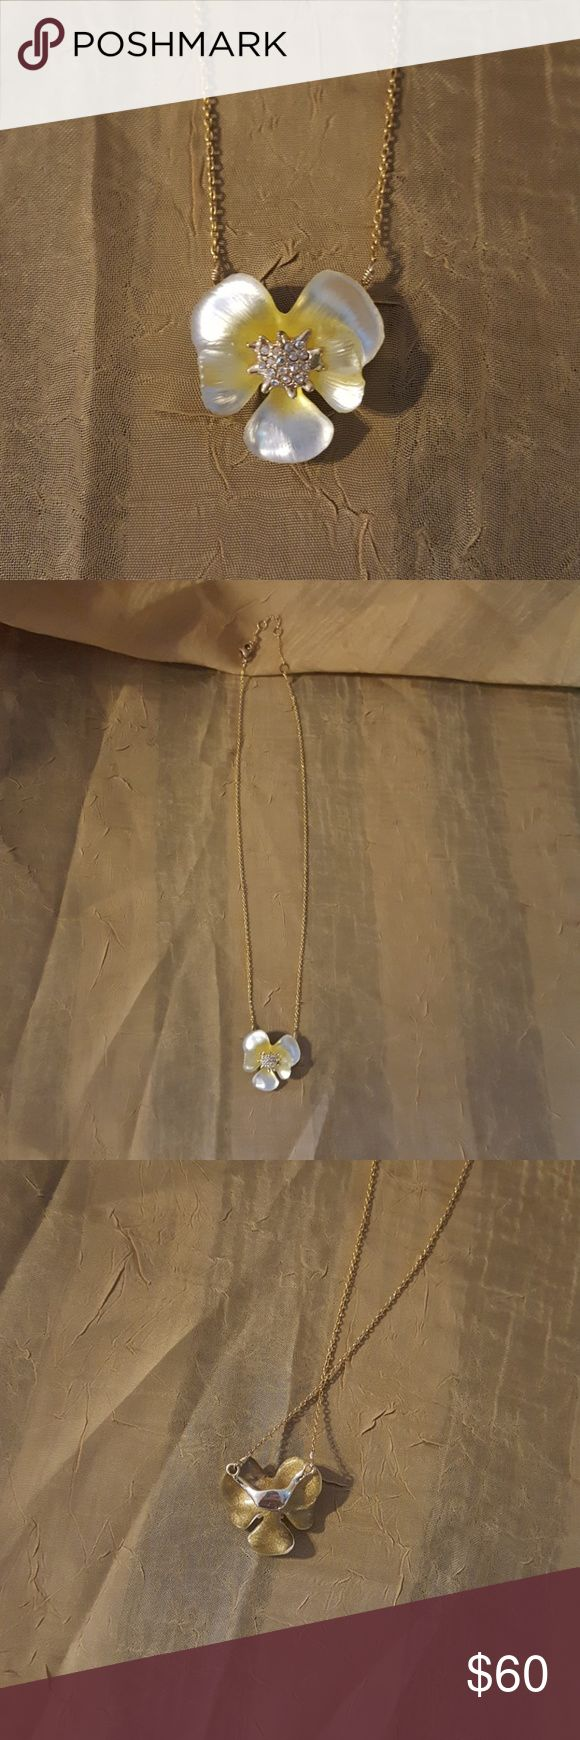 """Alexis Bittar swarovski crystal 10k gold plate Worn once. Yellow and white Lucite 10k gold plate swarovski crystals & 18k gold plated clasp. Sold from Nordstroms. Adjustable 16"""" chain with 3"""" extension. Worn once then put in jewelry box. Alexis Bittar Jewelry Necklaces"""